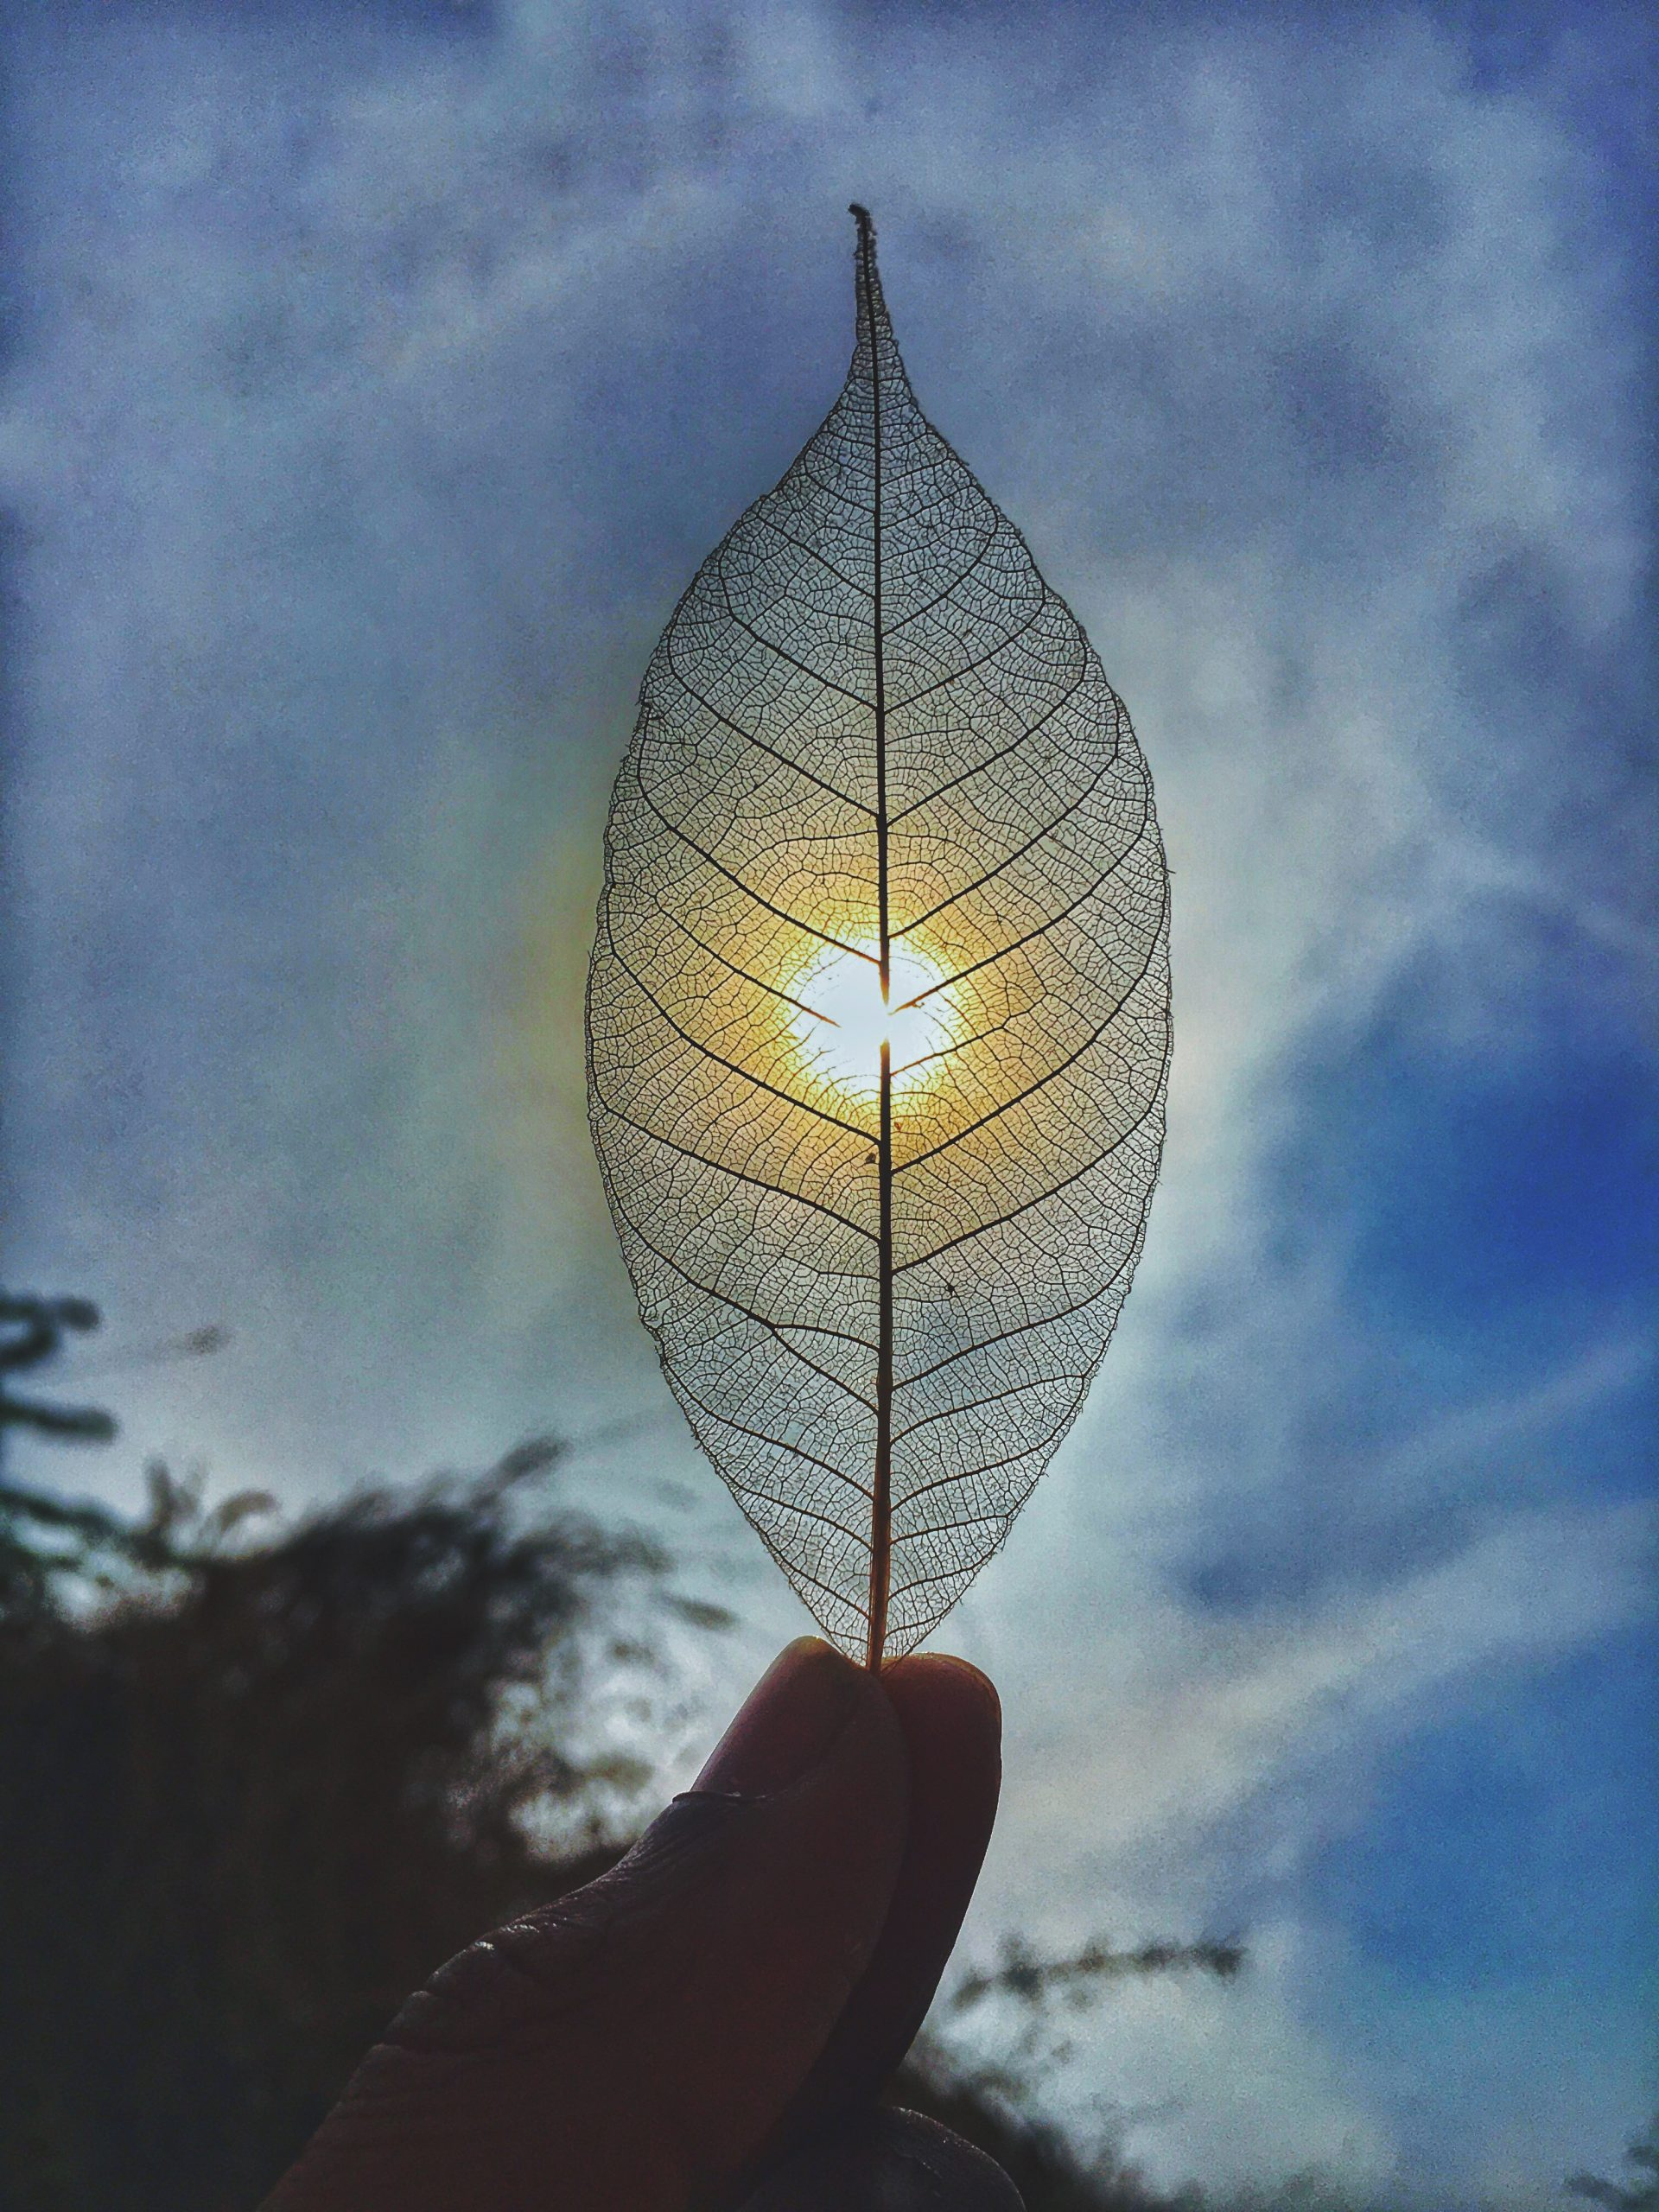 Sunshine through a dry leaf